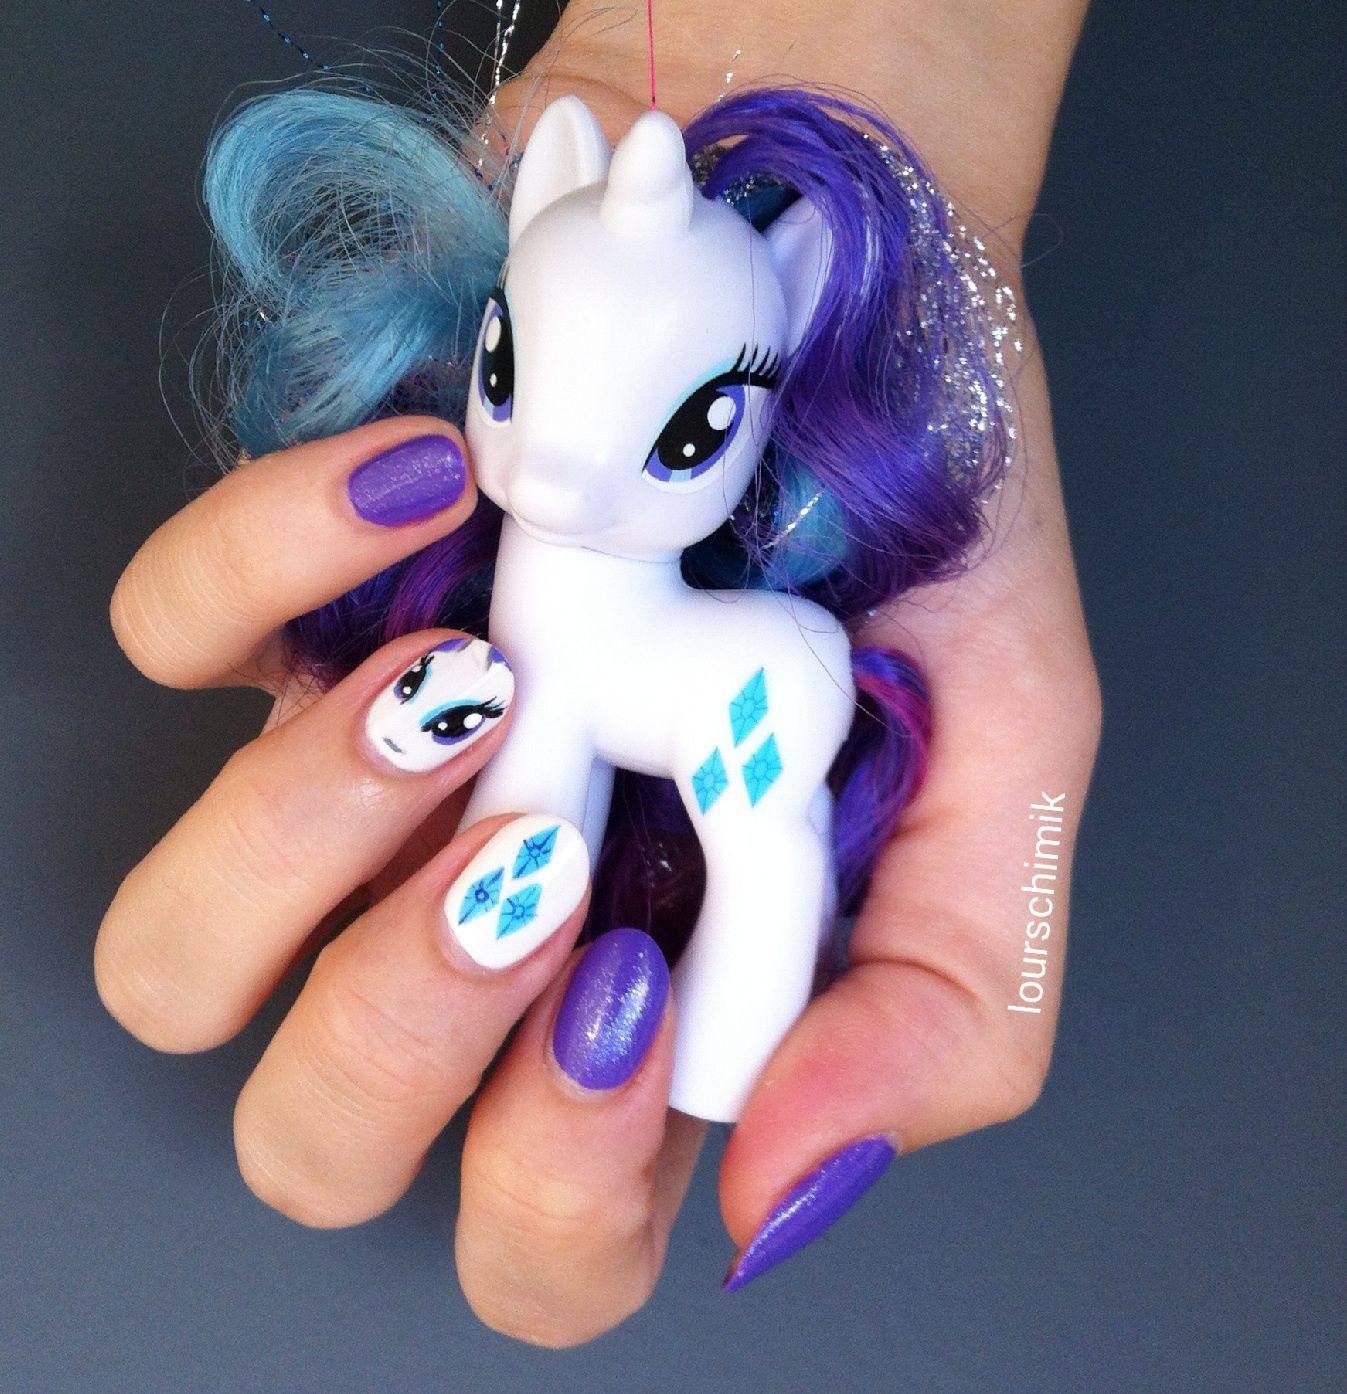 Rarity nail art - my little pony